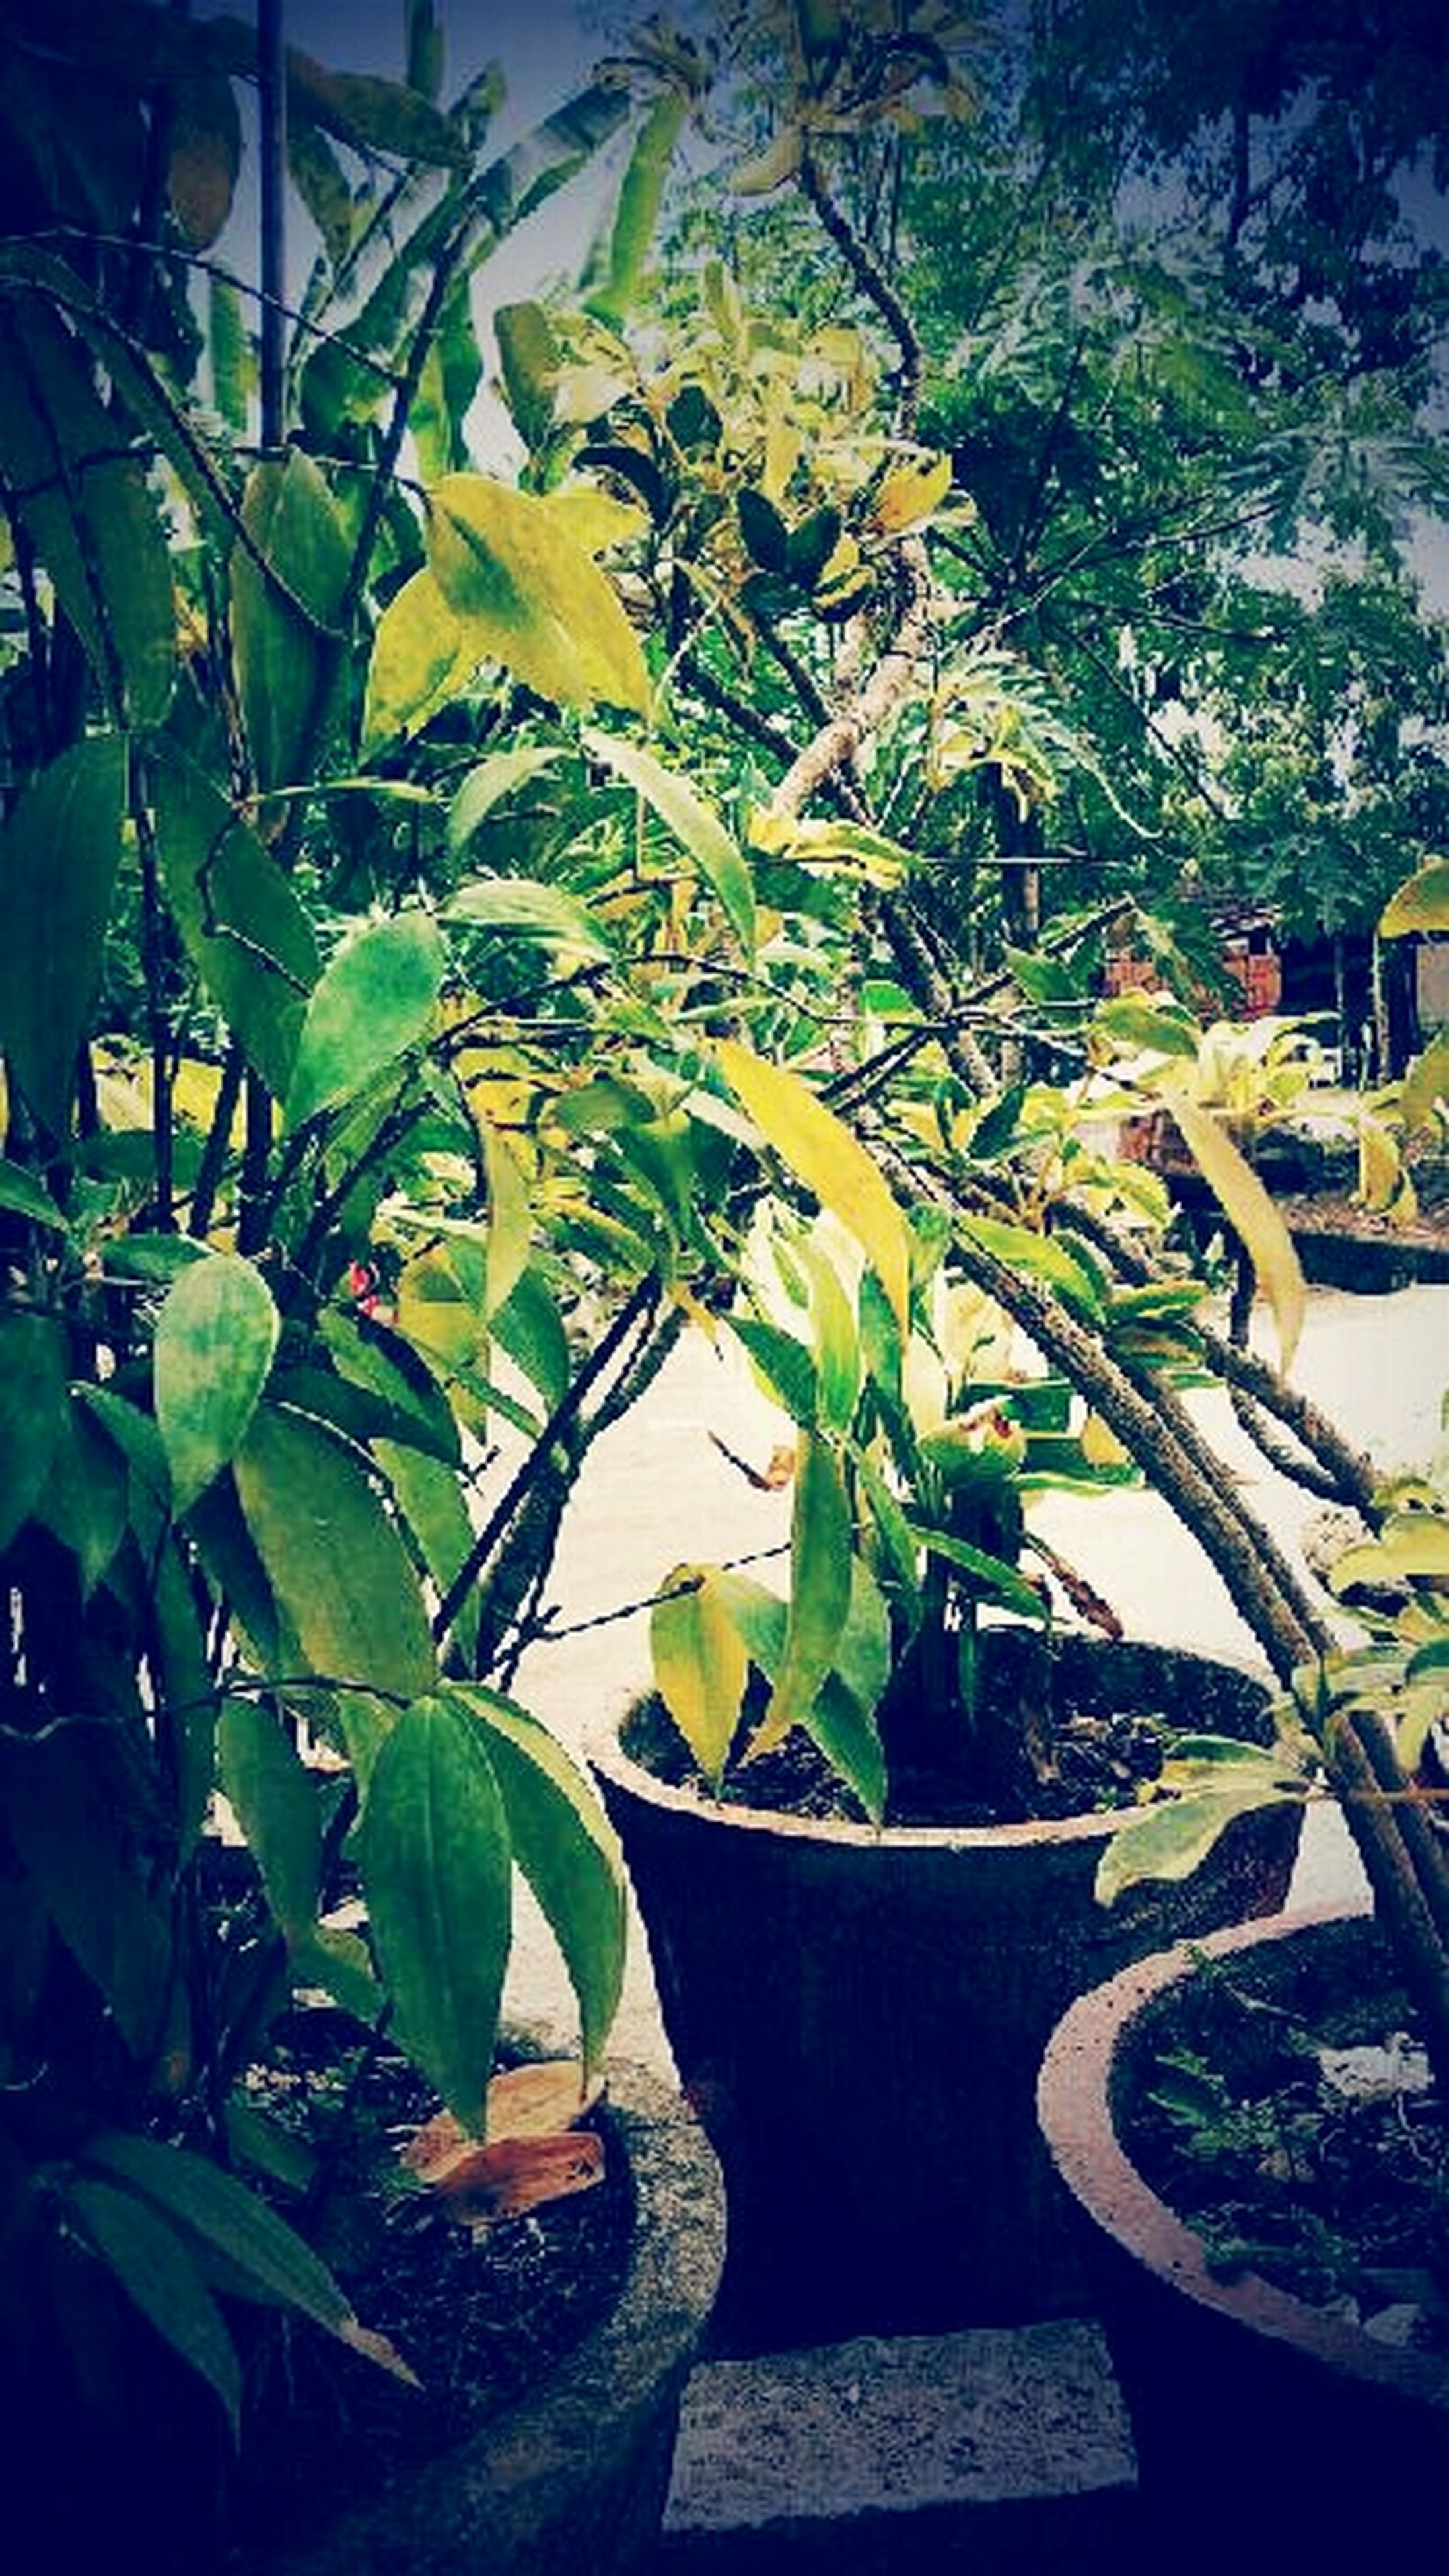 leaf, growth, potted plant, plant, green color, nature, tree, table, front or back yard, freshness, sunlight, day, chair, close-up, no people, beauty in nature, outdoors, growing, focus on foreground, green